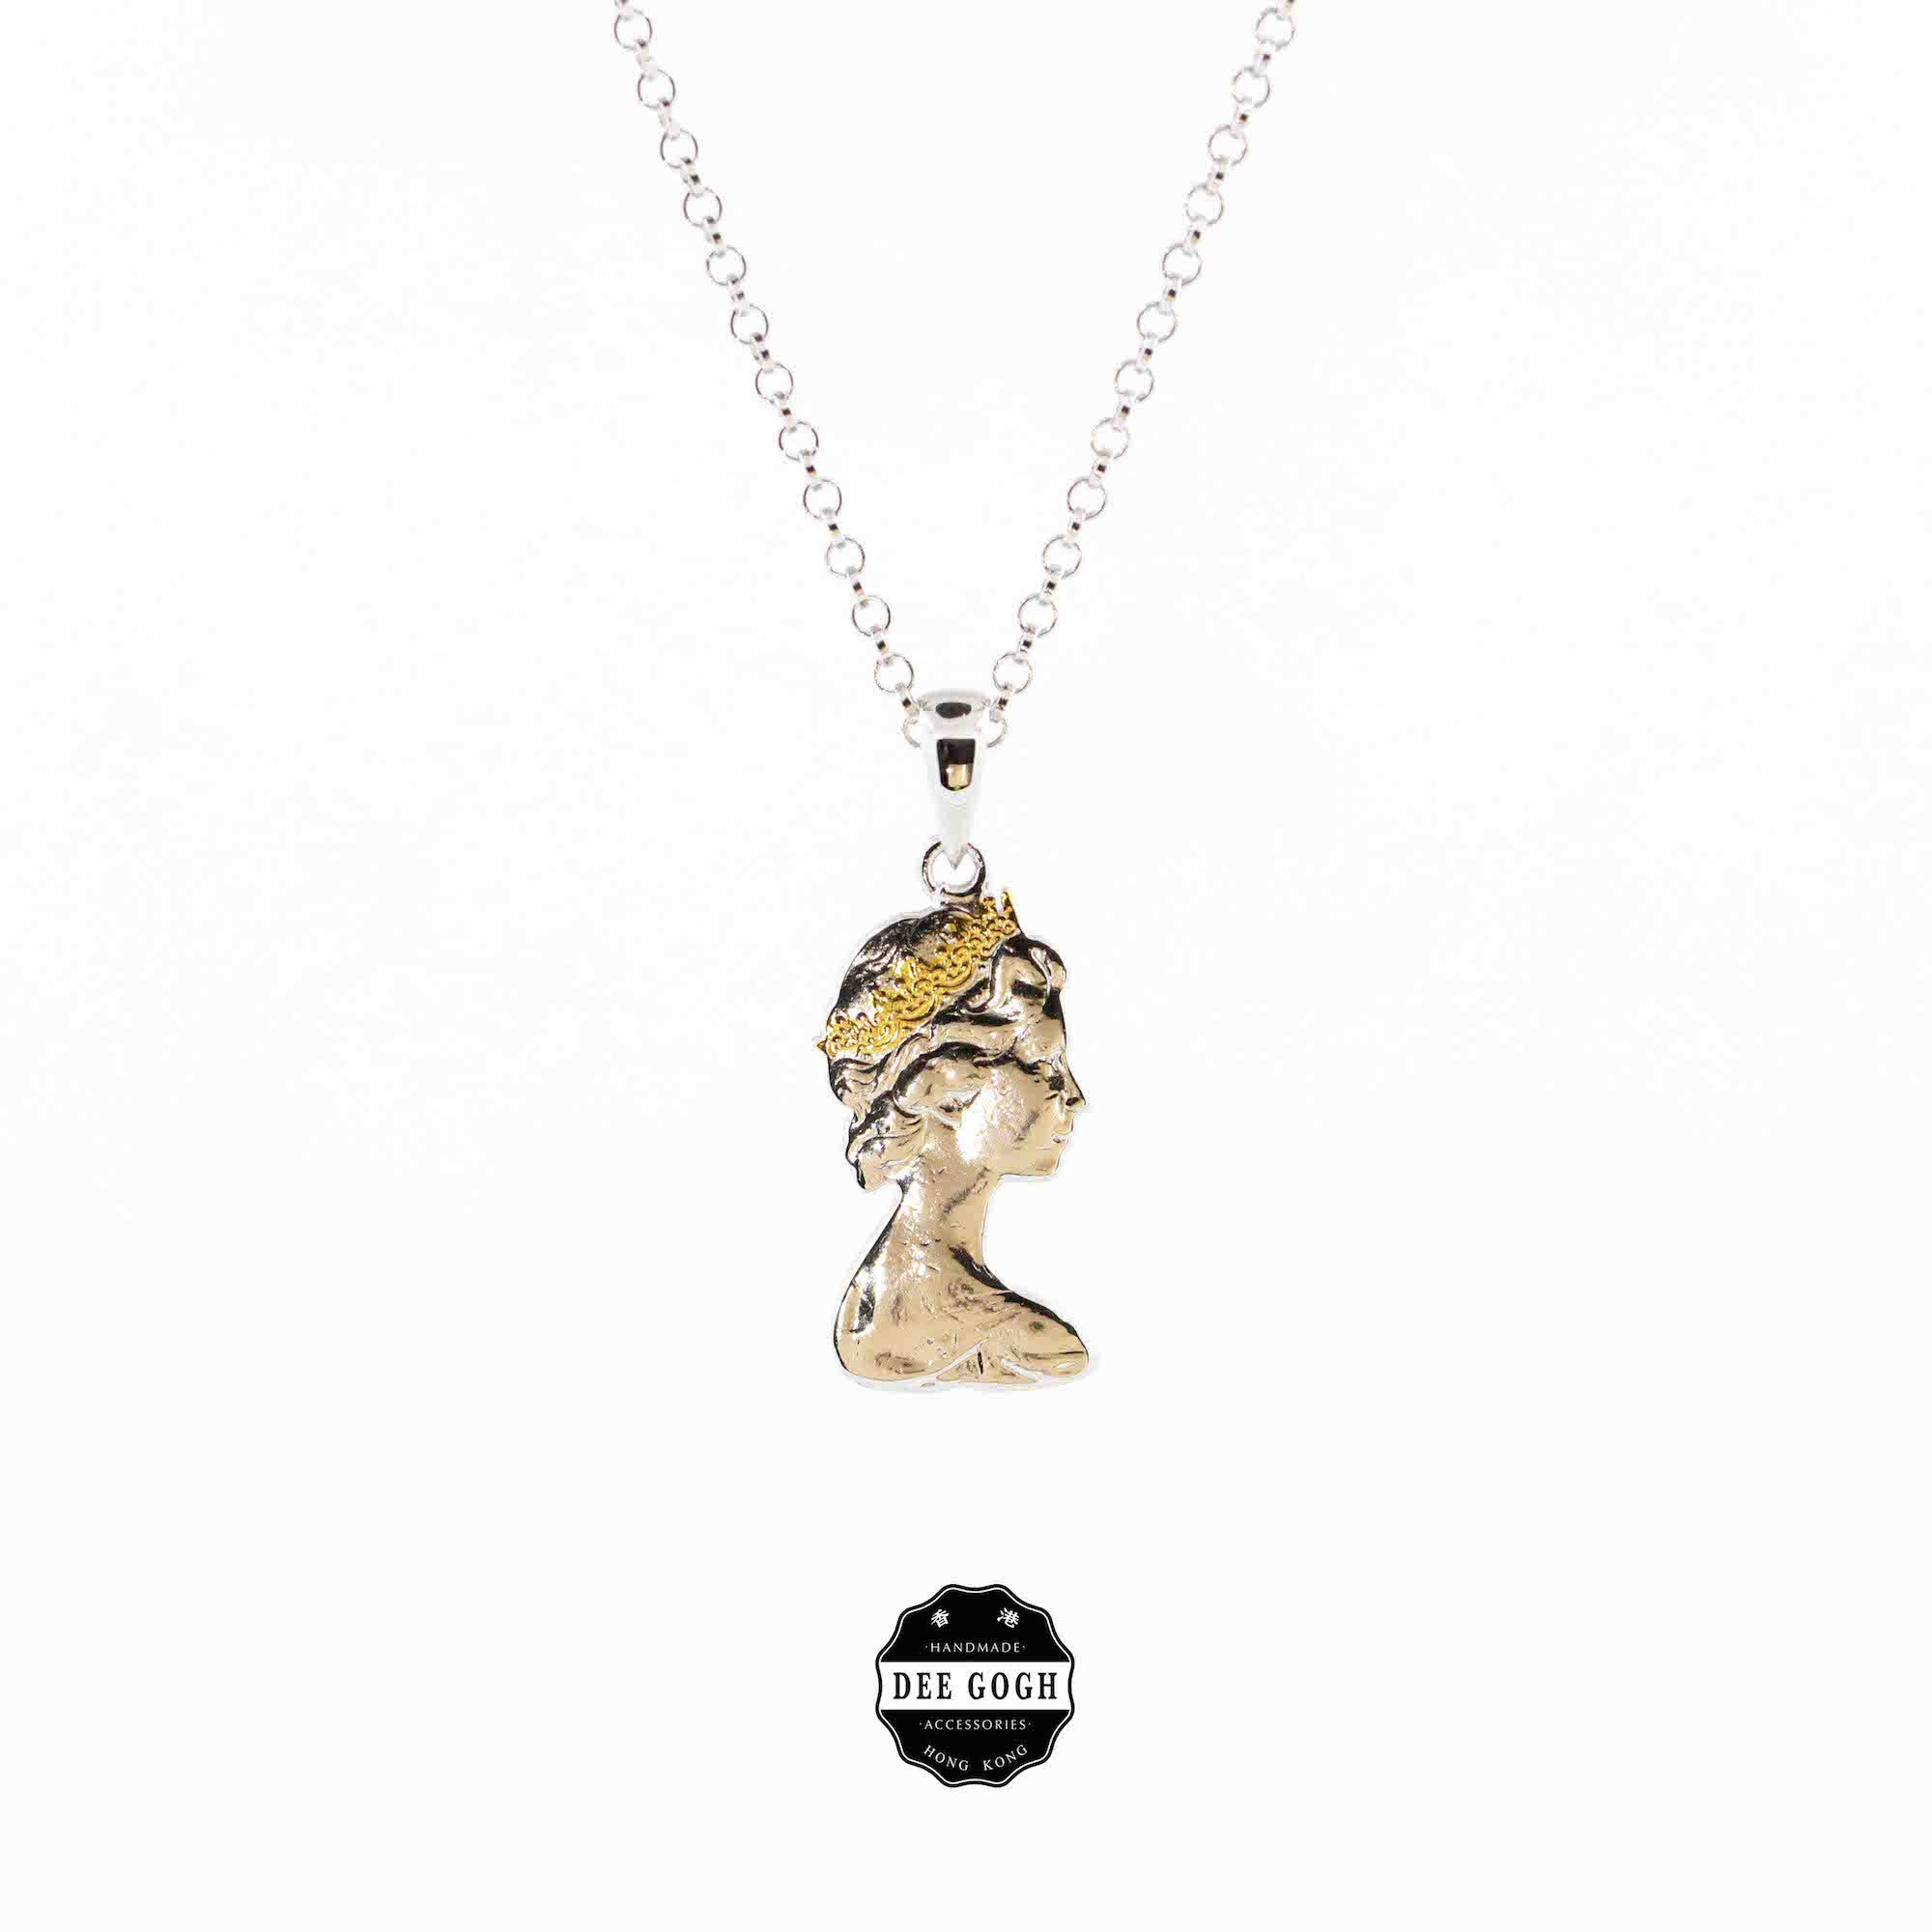 The 'Her Majesty I' Pendant / Charm (1975-1984)